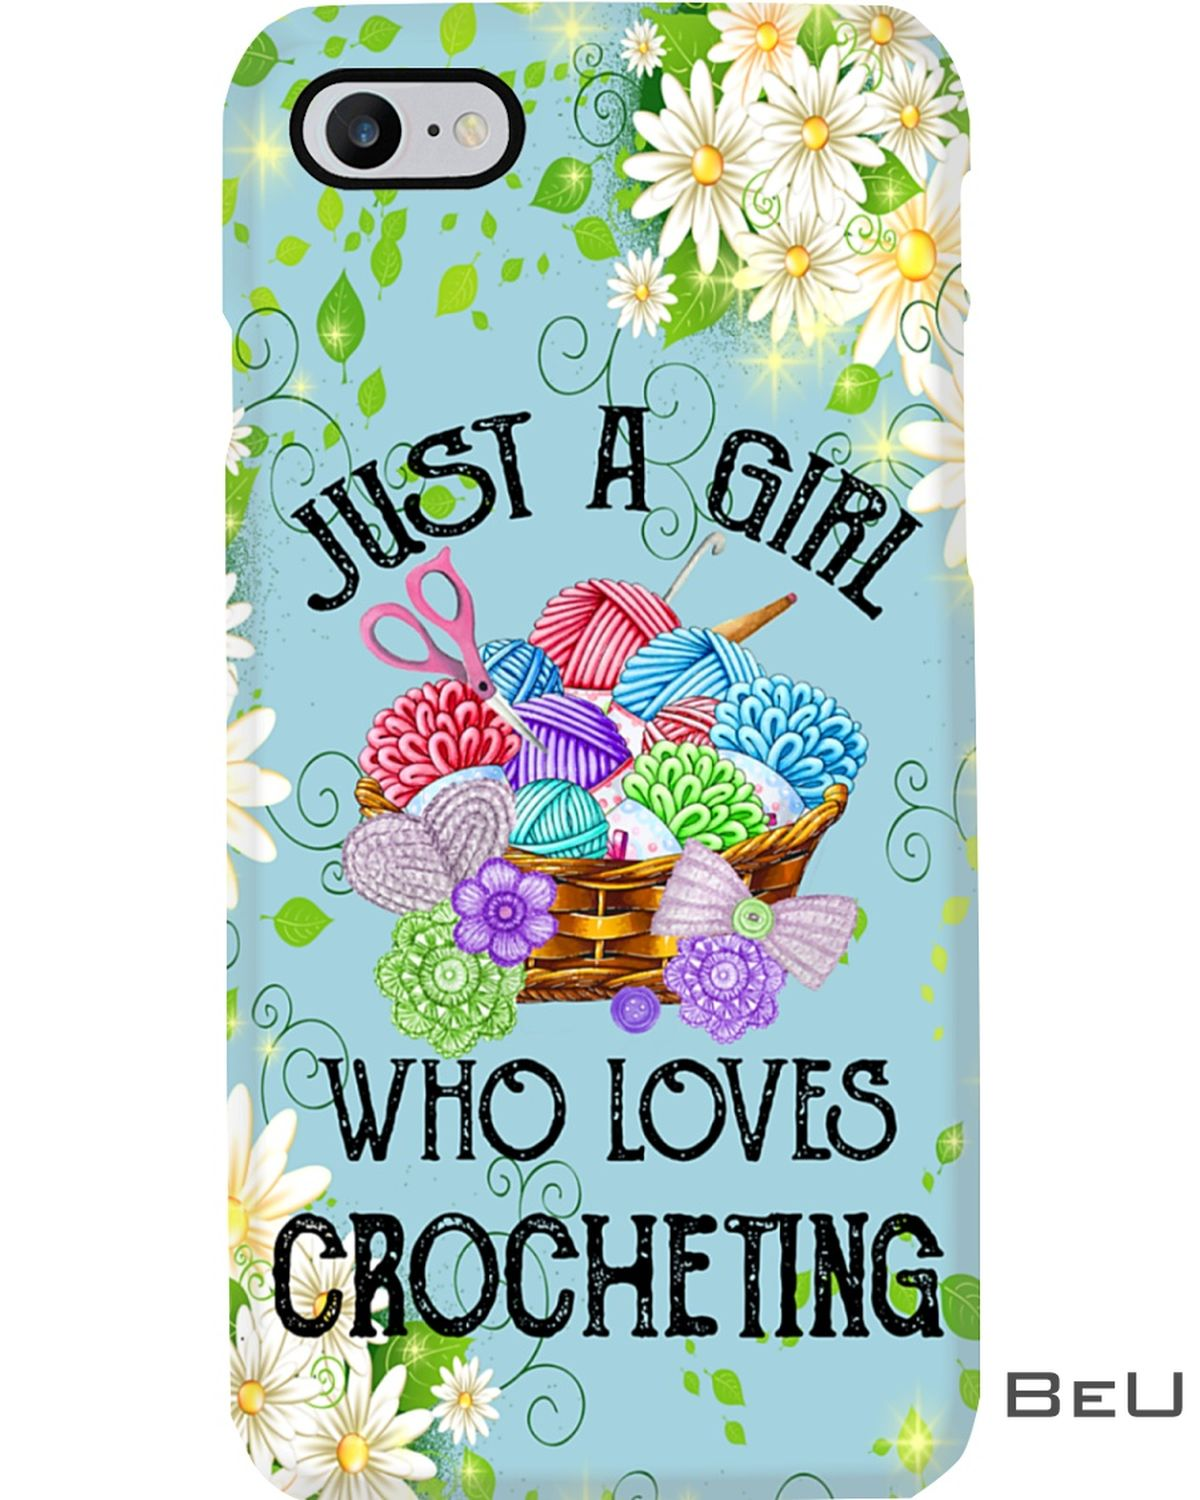 A girl who loves Crocheting phone case